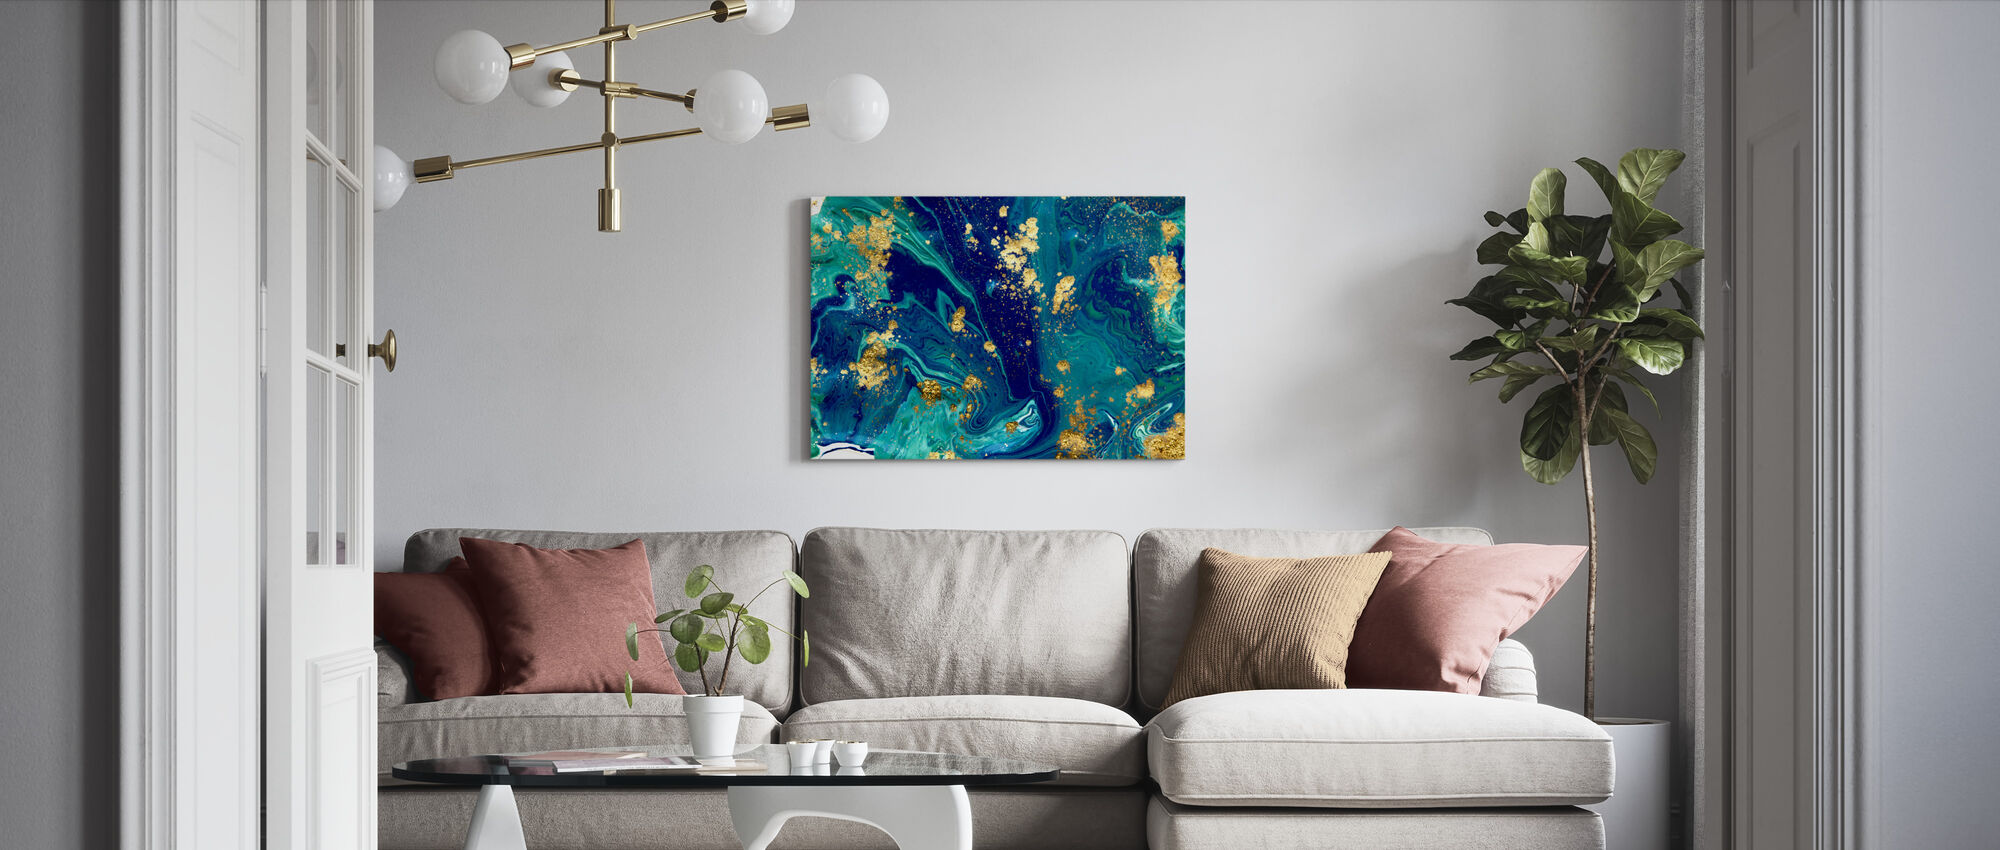 Blue Liquid Marble - Canvas print - Living Room